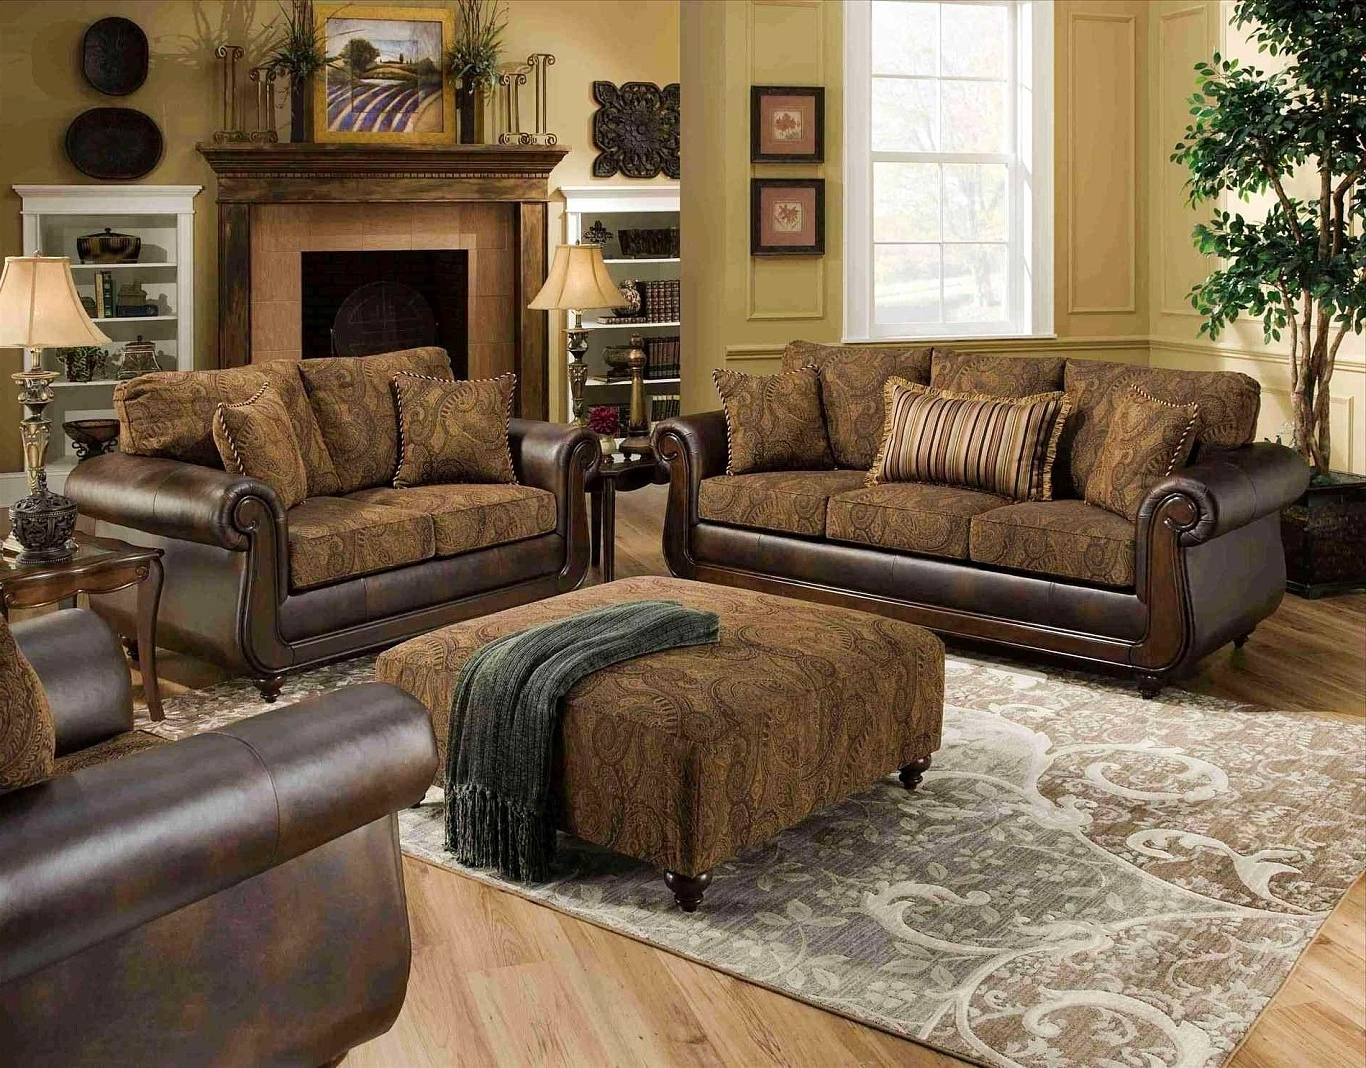 Most Recently Released Farmers Furniture Sectional Sofas For Vino Reclining Sofa Badcock Hamilton Badcock Amarillo Trifecta (View 15 of 20)